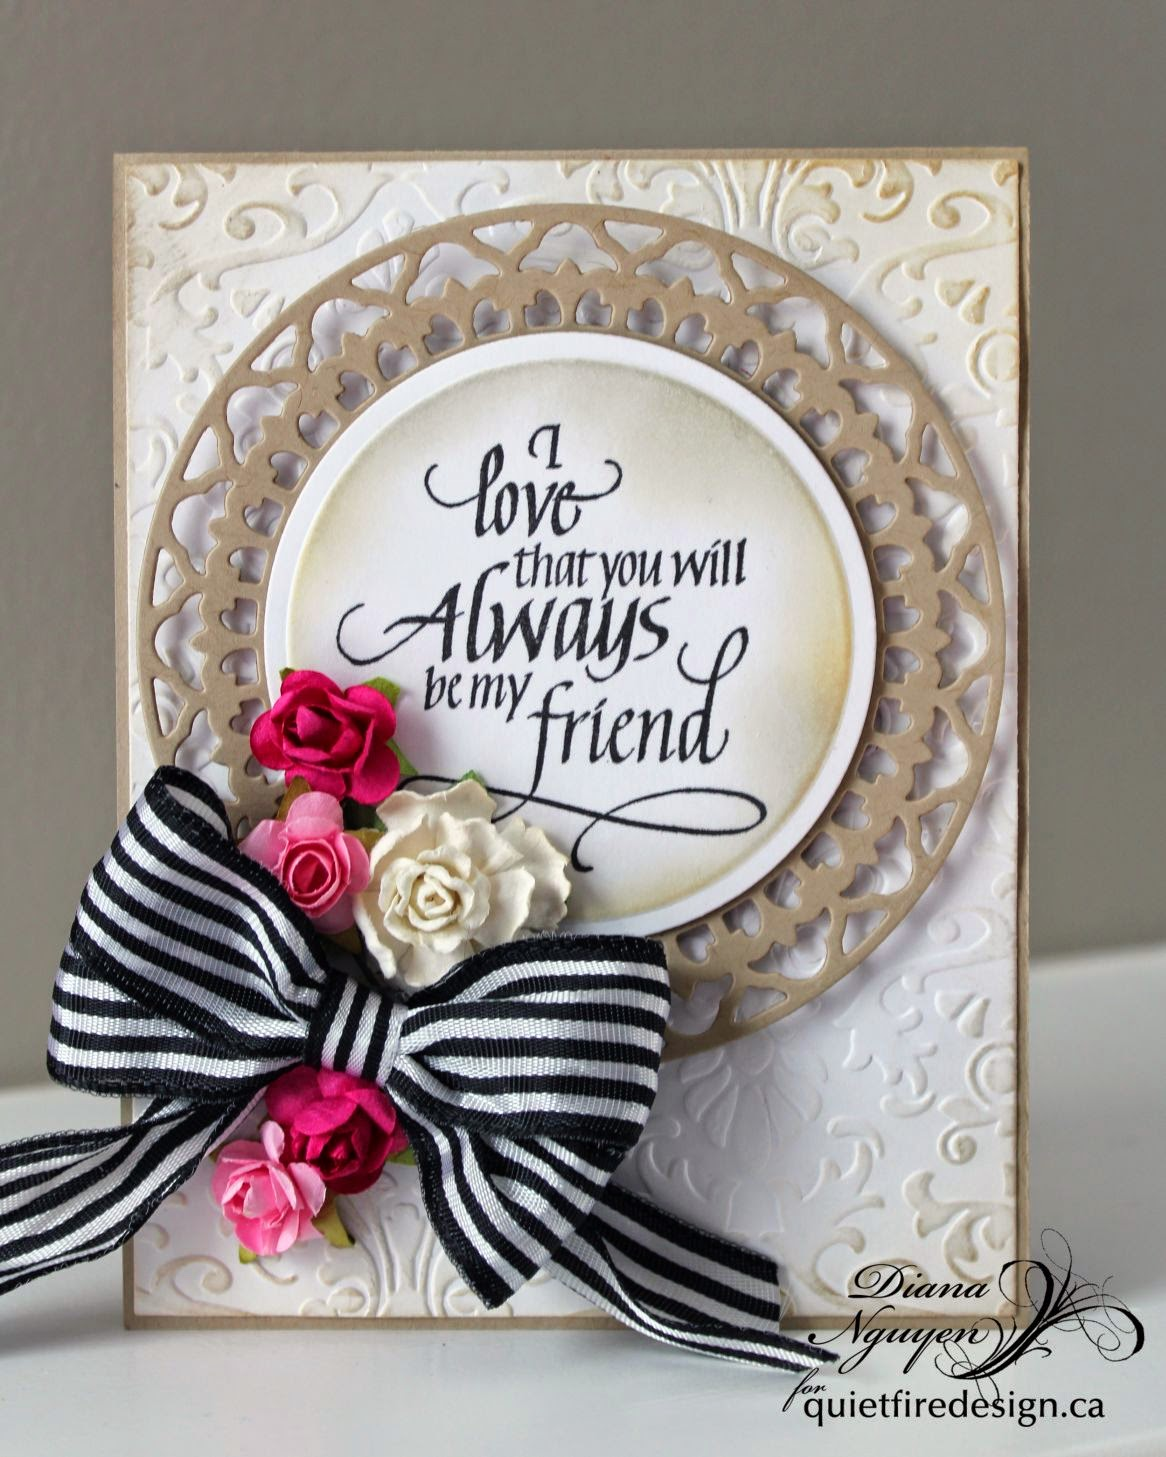 Always be my friend, Quietfire Design, Diana Nguyen